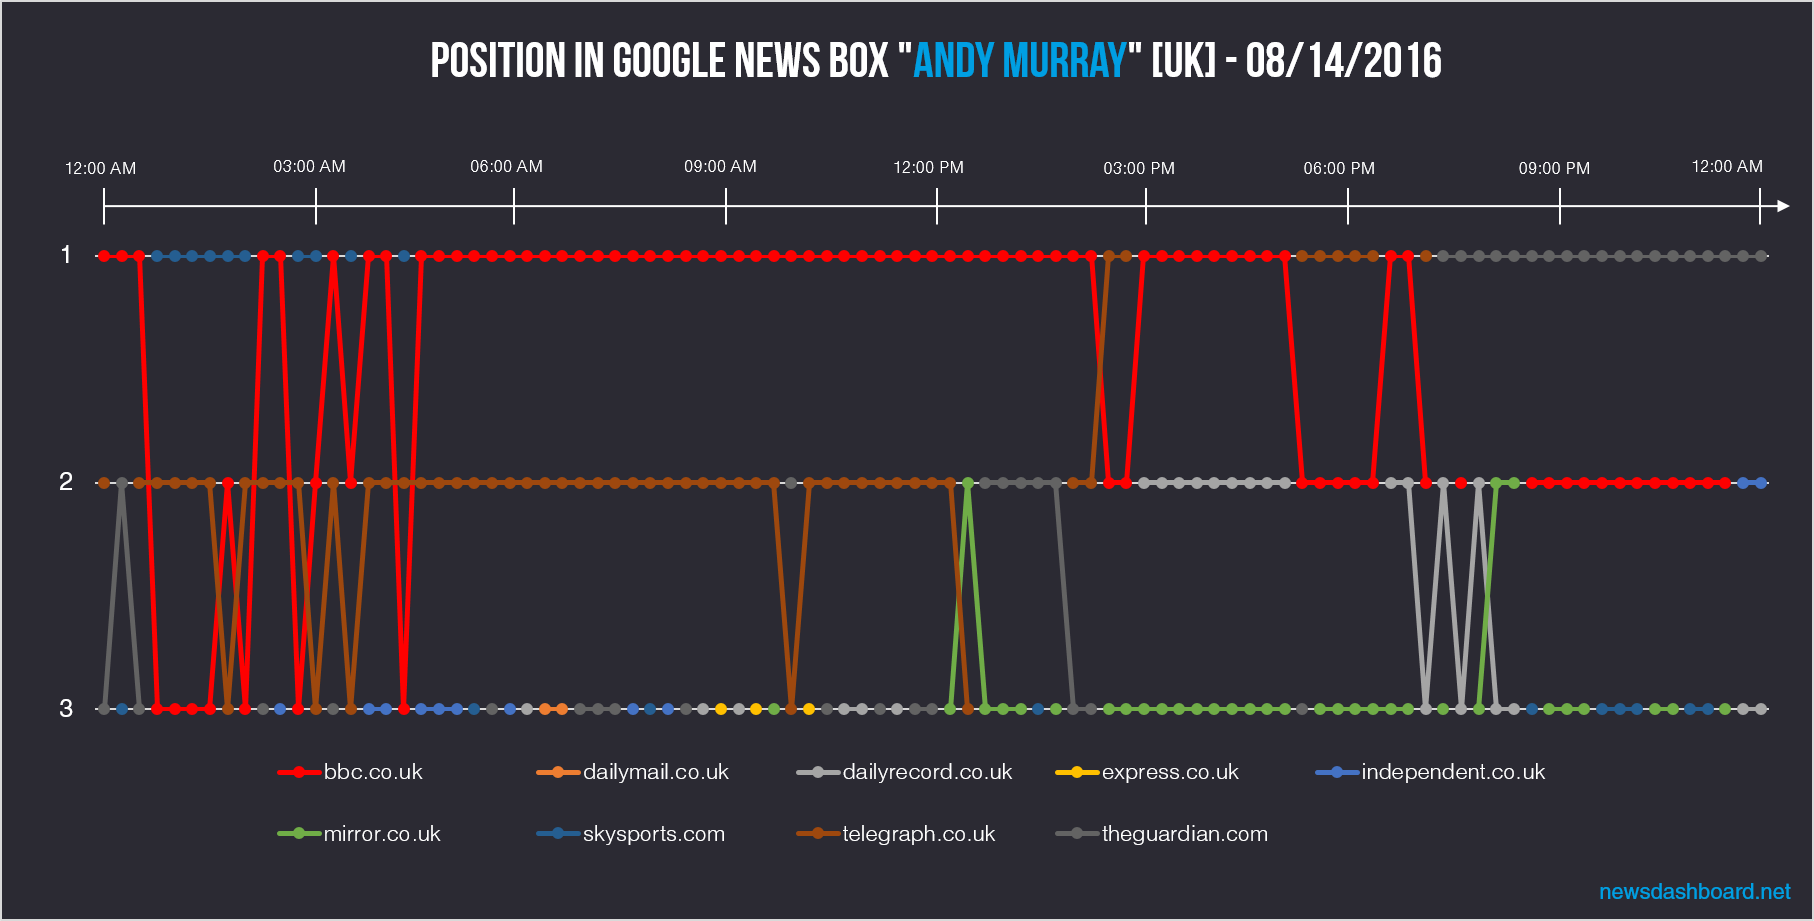 At the 14th of August, bbc.co.uk was most of the time ranking first position in the Google News Box for Andy Murray